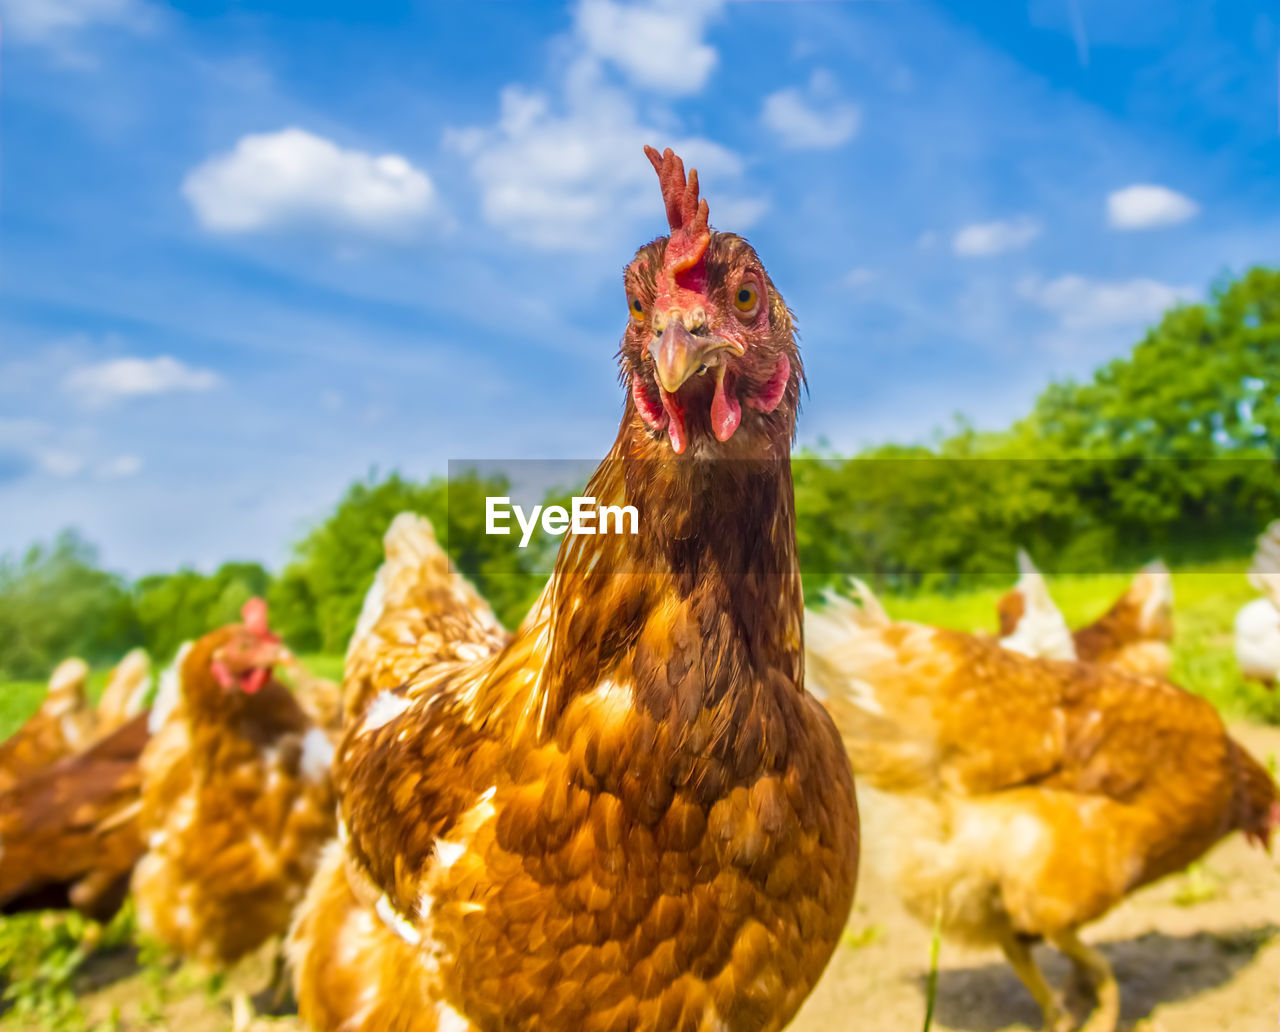 animal themes, chicken, animal, livestock, domestic animals, chicken - bird, mammal, domestic, pets, focus on foreground, bird, no people, sky, vertebrate, nature, group of animals, cloud - sky, day, field, outdoors, mouth open